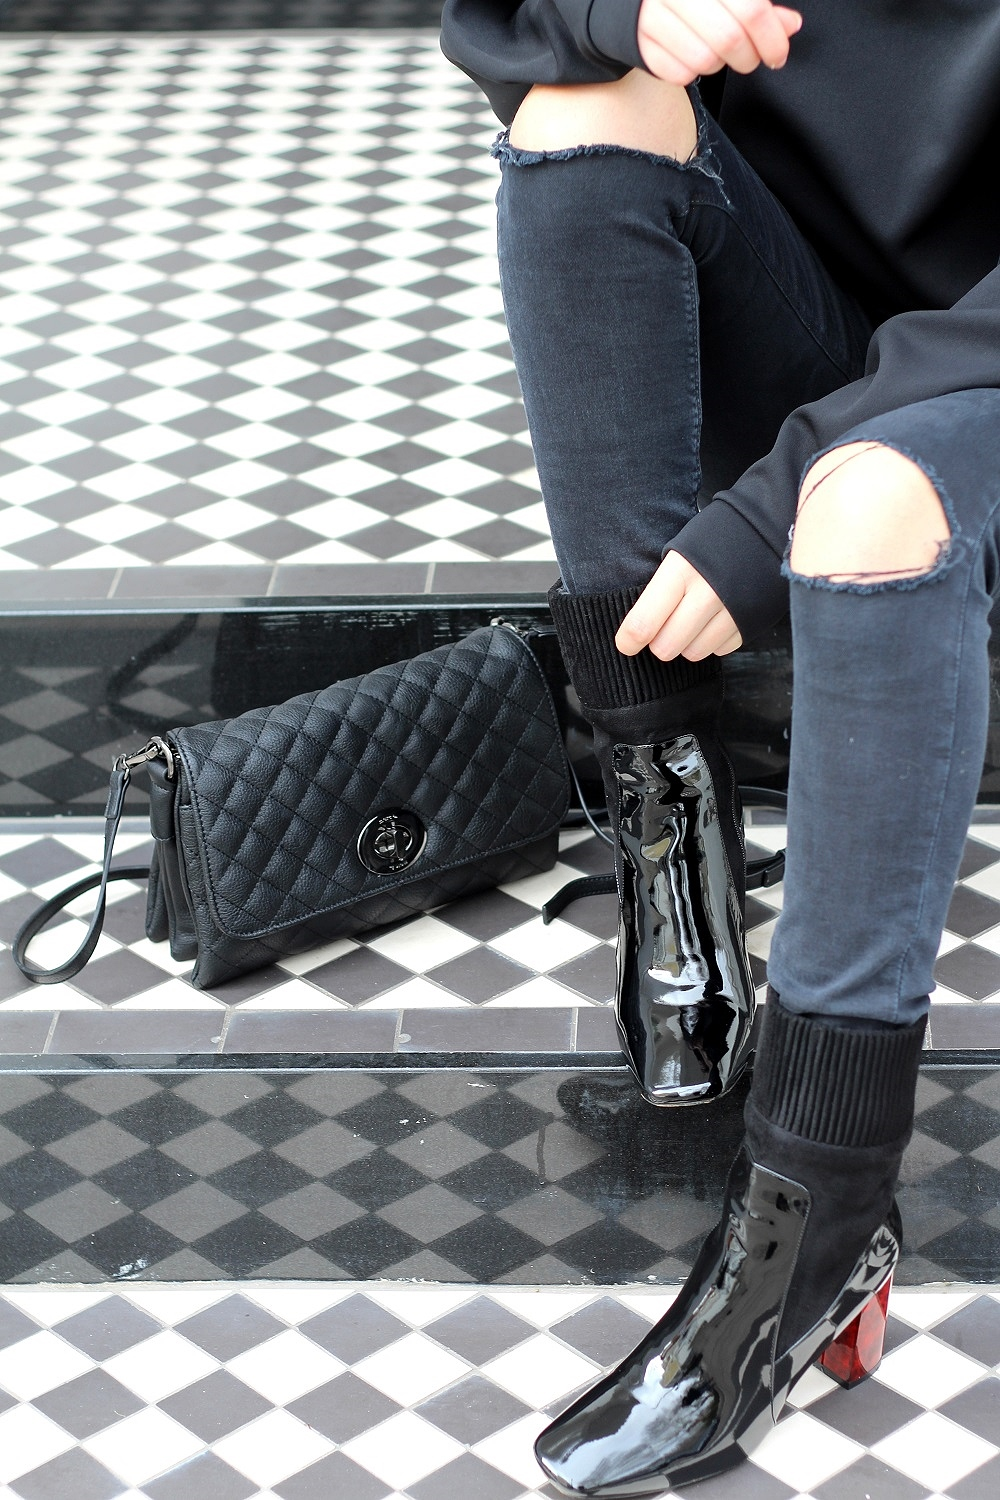 marc b bags quilted bag ripped jeans